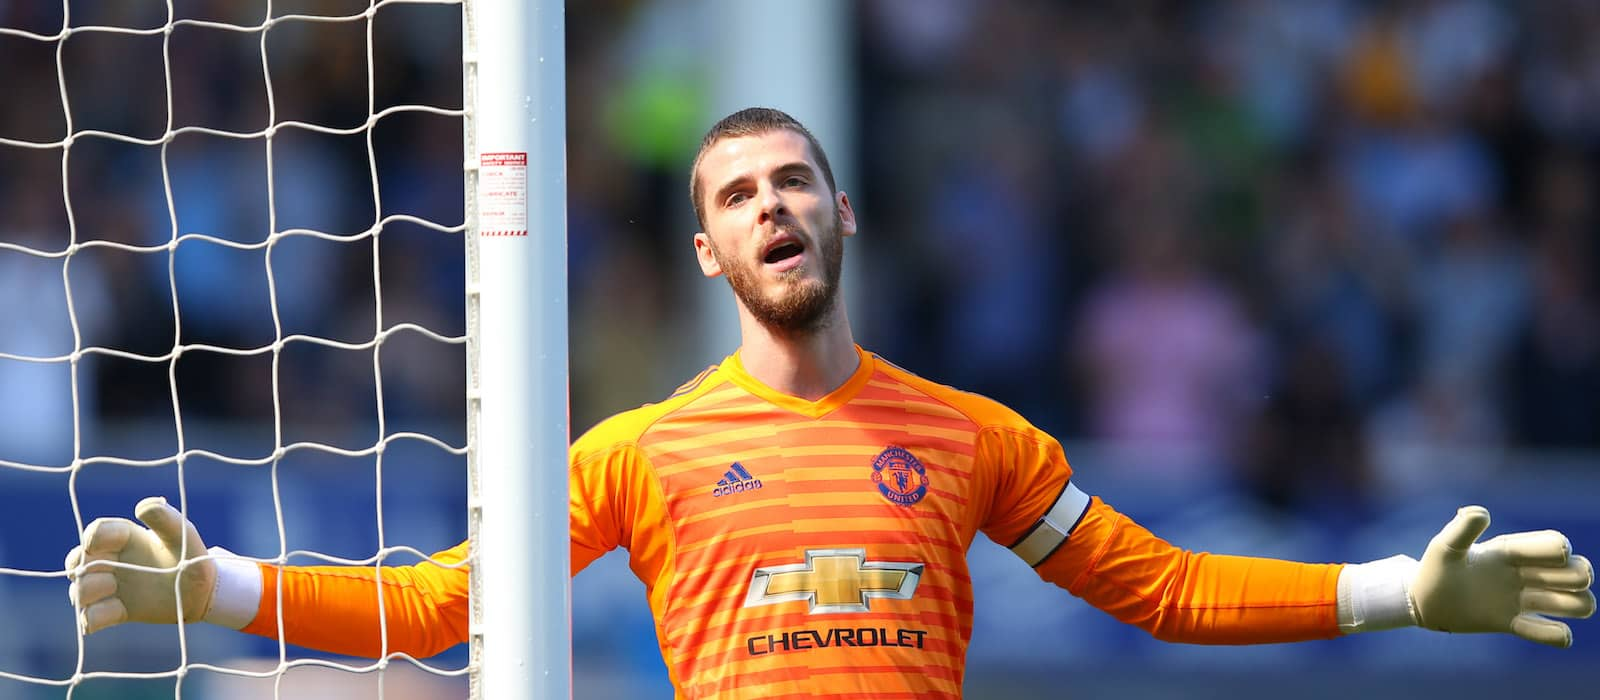 De Gea's new Man United contract: Should fans be celebrating?